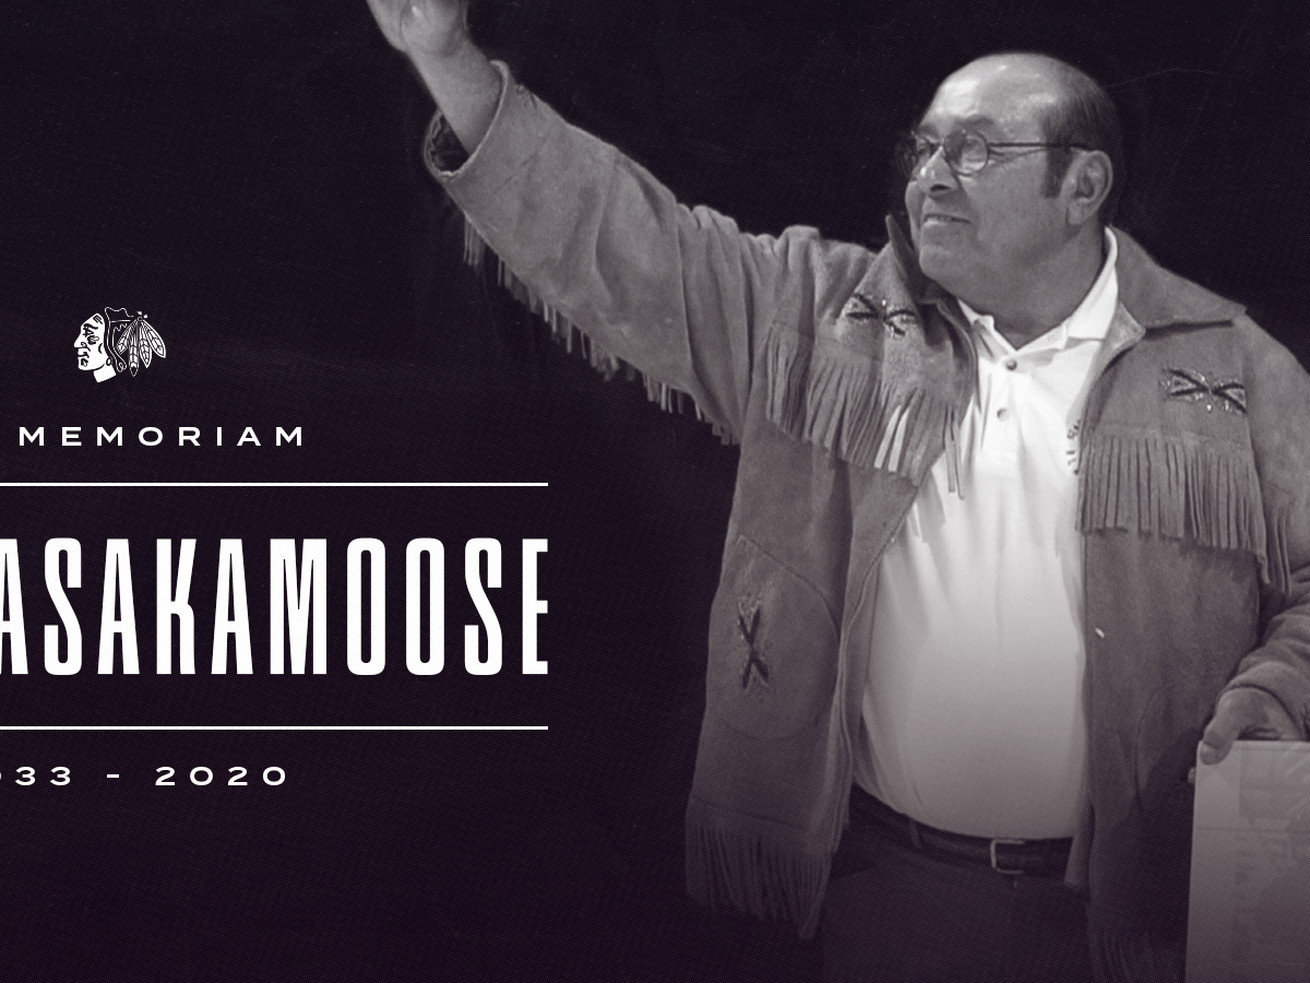 Former Blackhawks player Fred Sasakamoose, one of NHL's first Indigenous players, dies of COVID-19